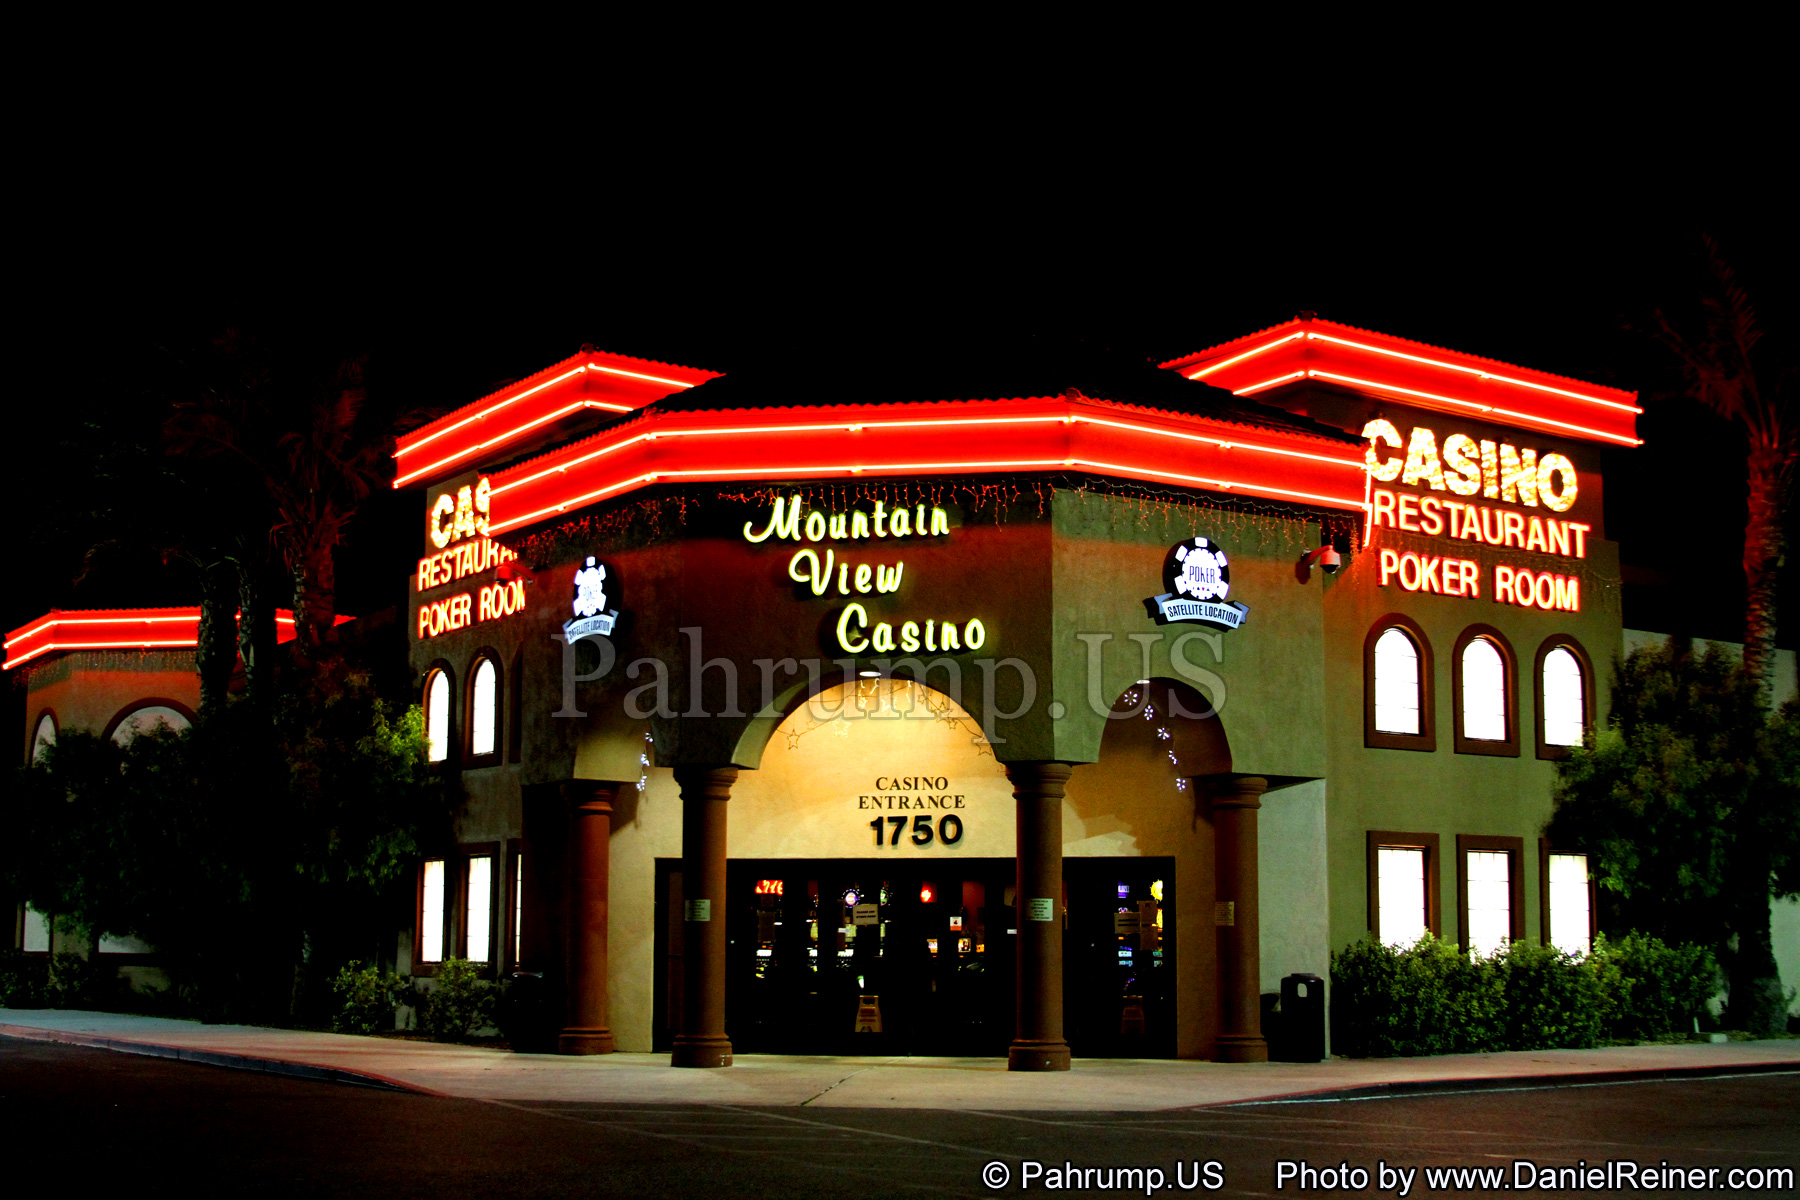 Casinos in pahrump nevada best slot machines to play at the rivers casino